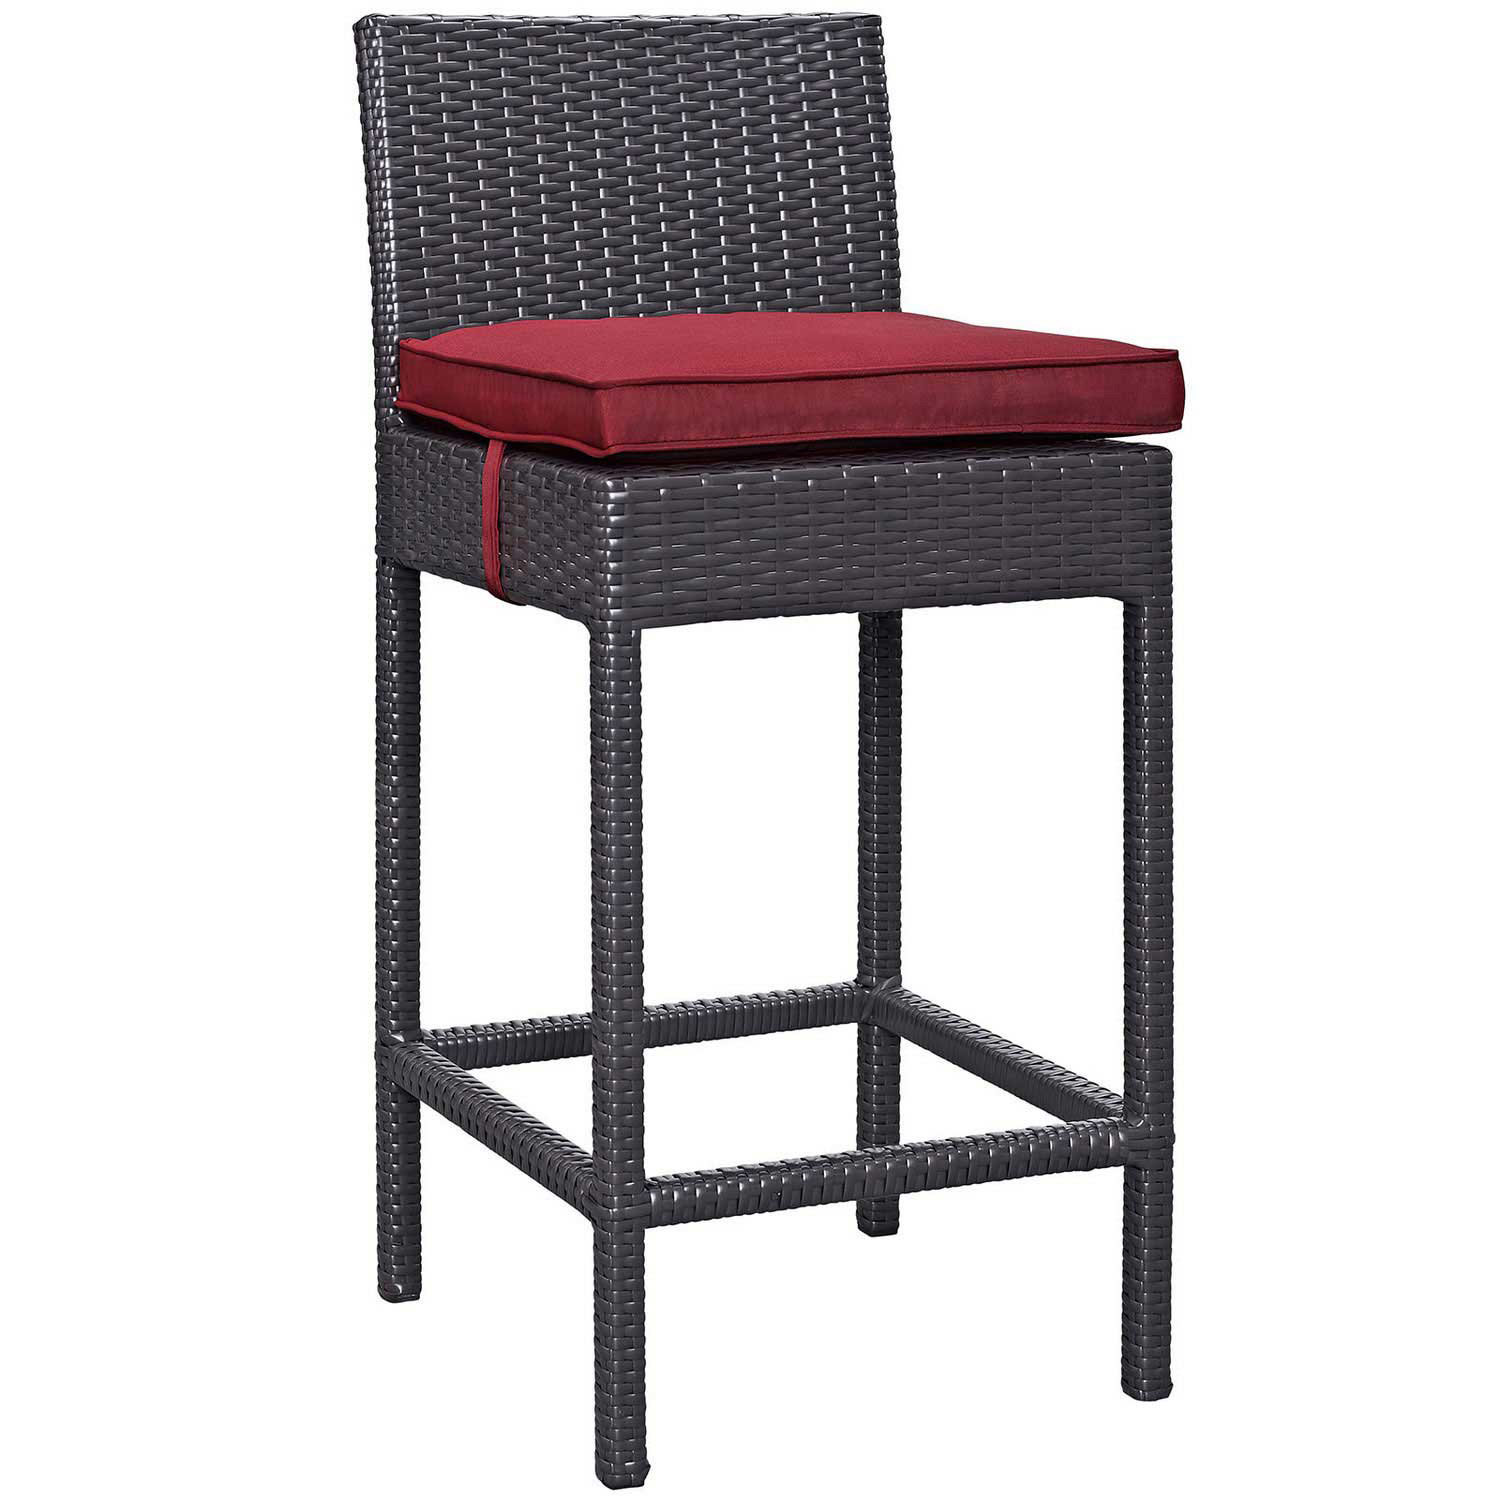 Modway Convene Outdoor Patio Fabric Bar Stool - Espresso Red